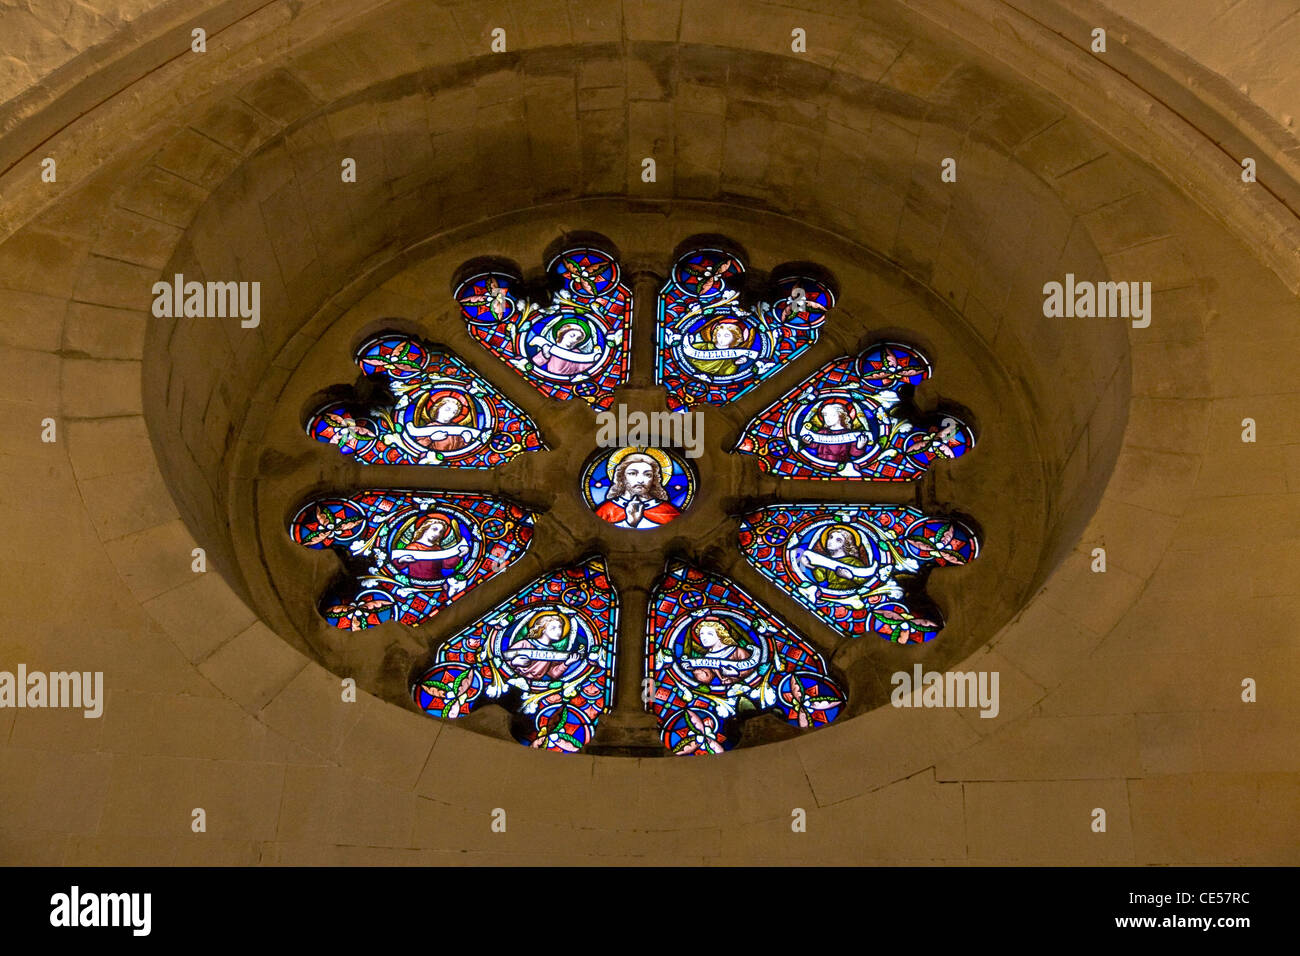 Circular Stained-glass Window In 1th-century Round Temple